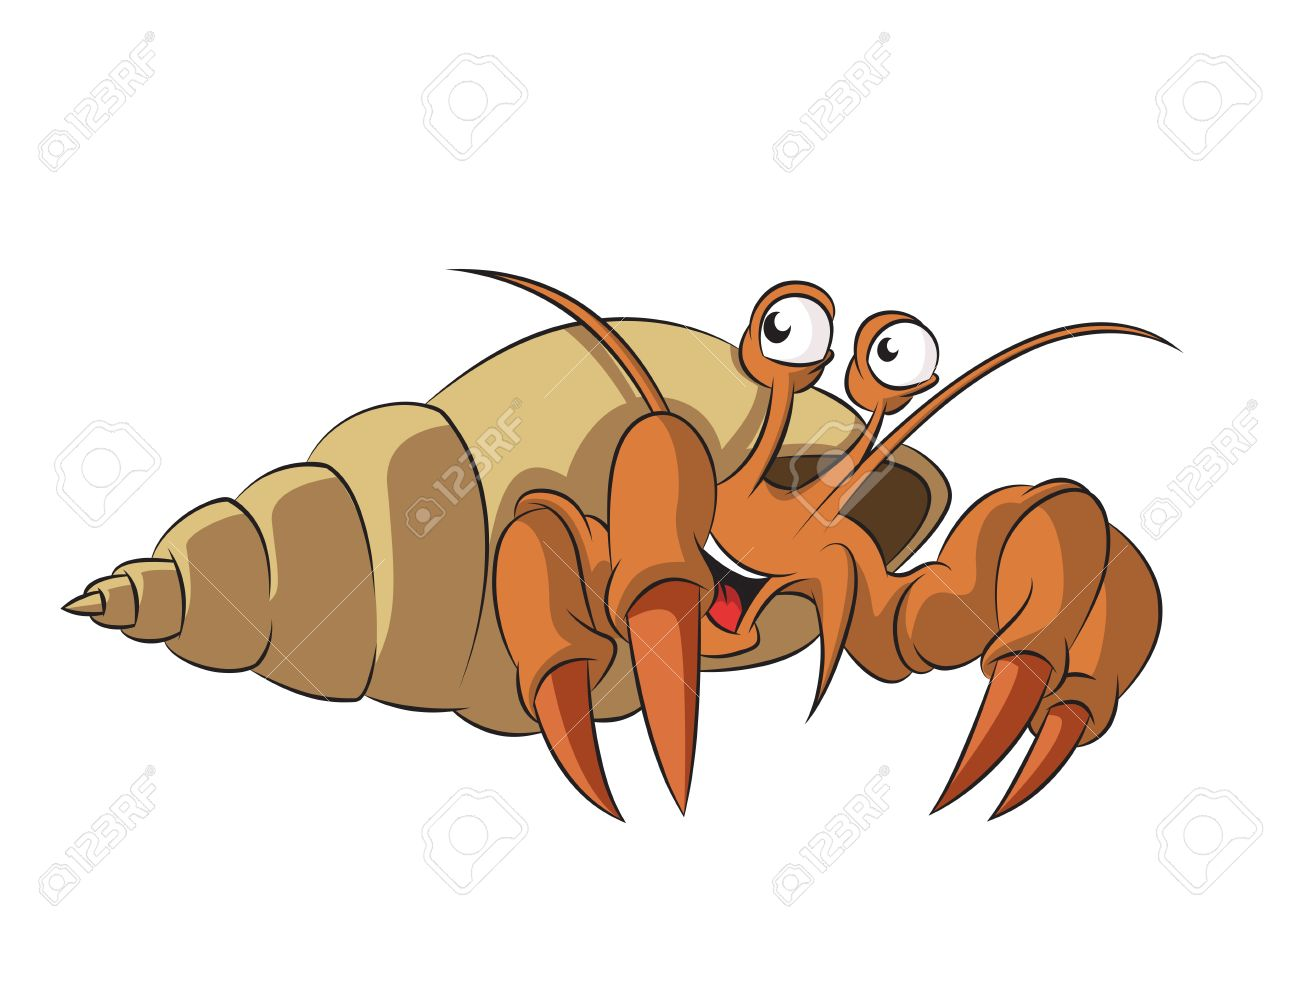 hermit crab stock photos royalty free hermit crab images and pictures